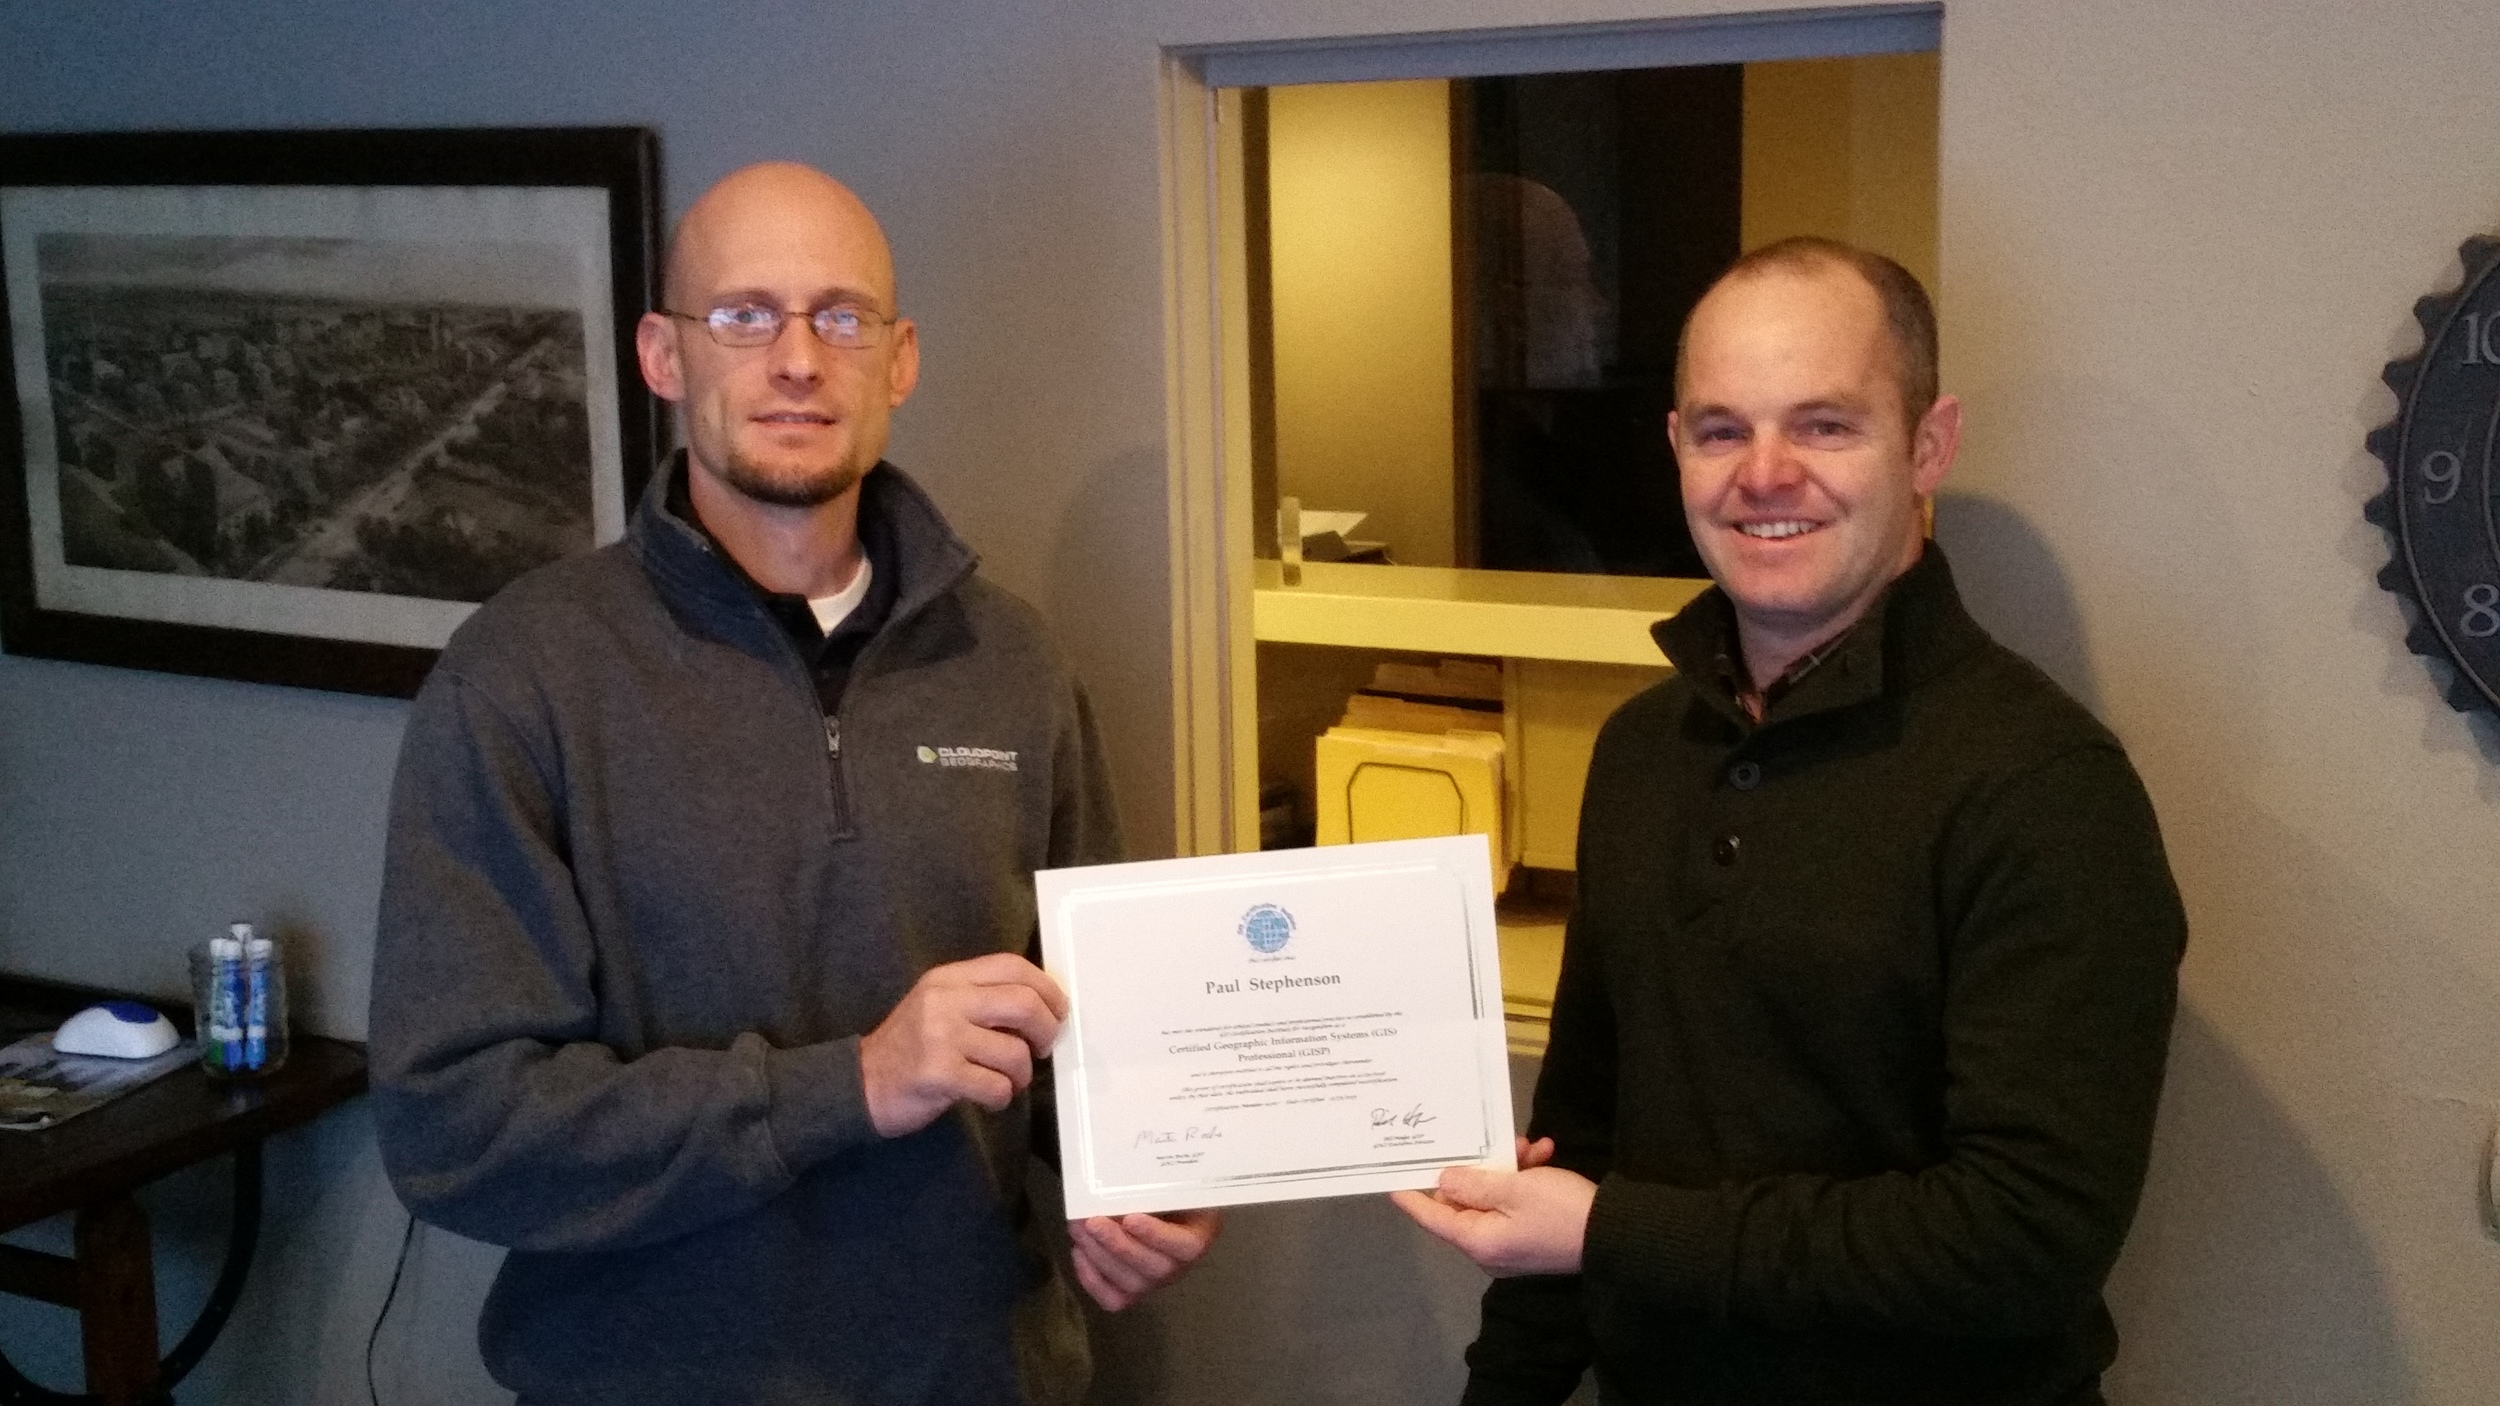 Pictured are Paul Stephenson (left) and Jon Hodel (right) with Paul's new GISP certification